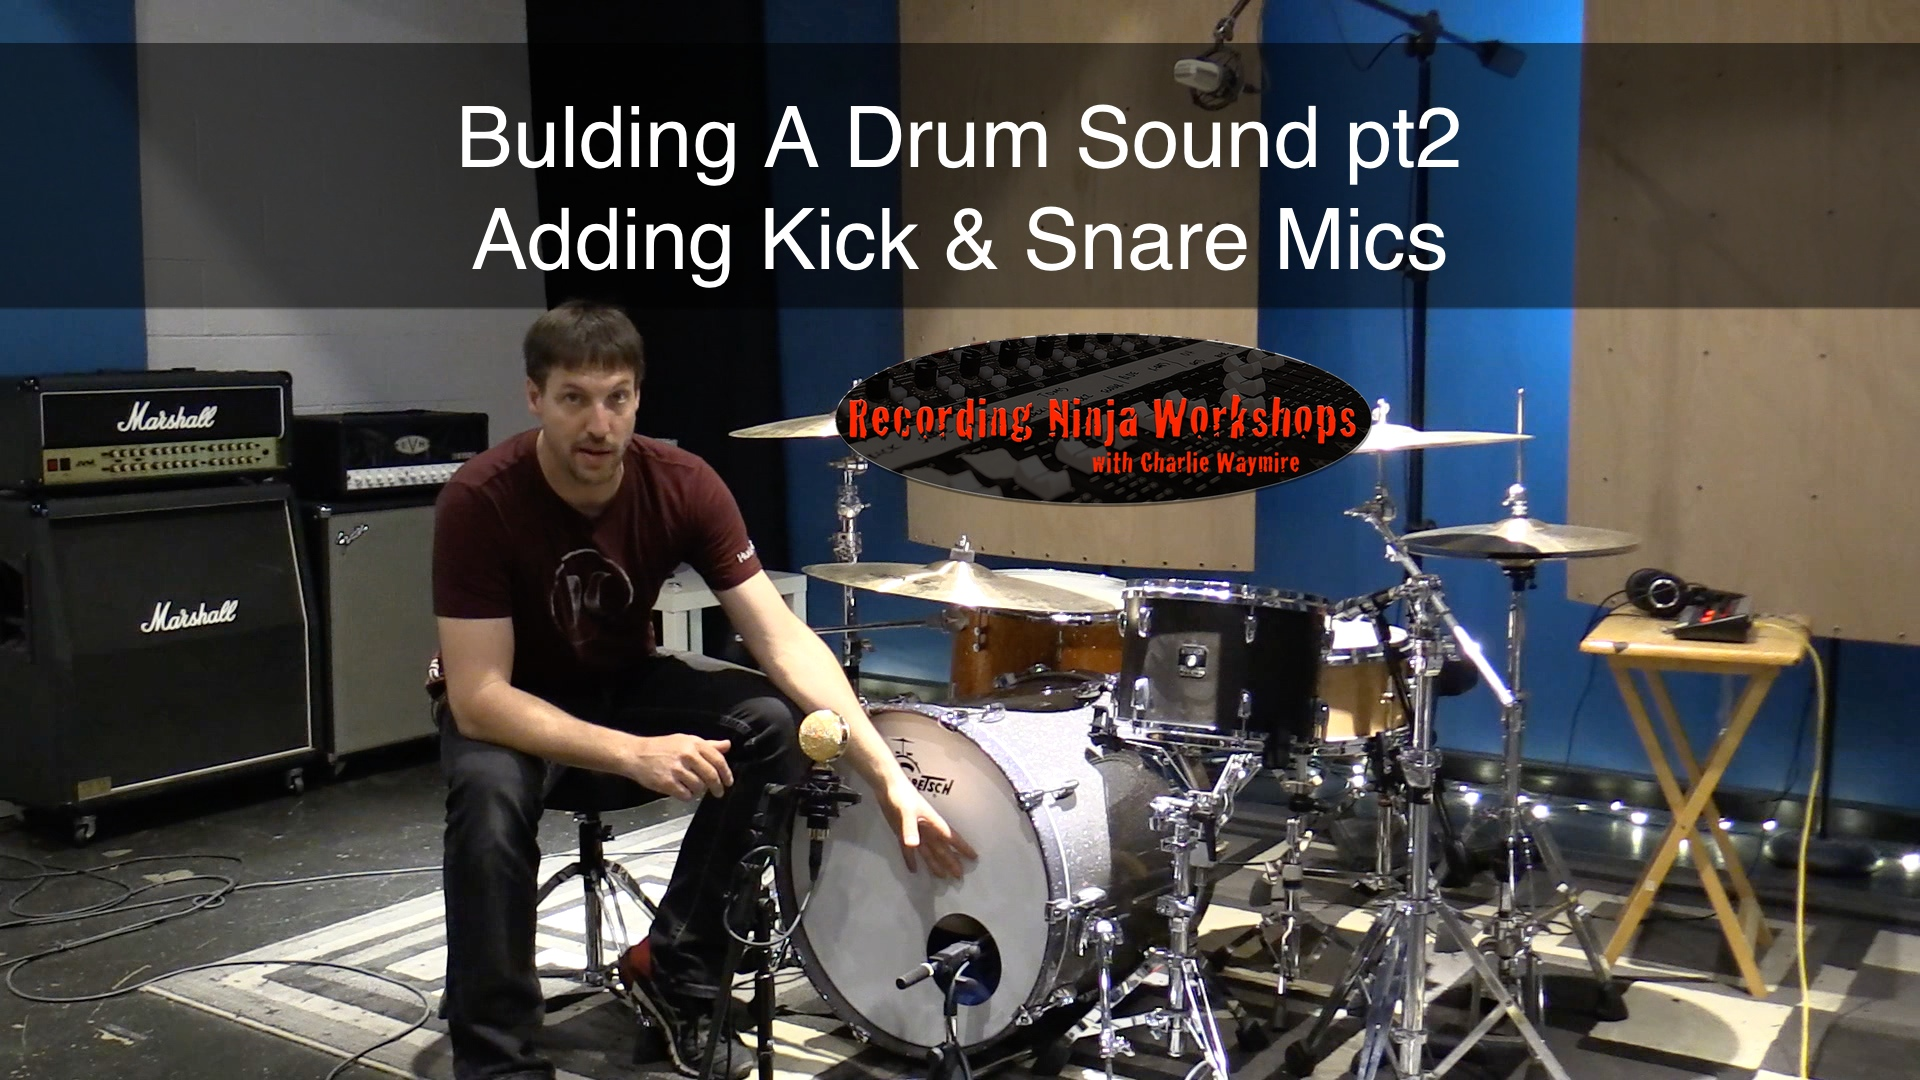 Building A Drum Sound pt2 Is Up!